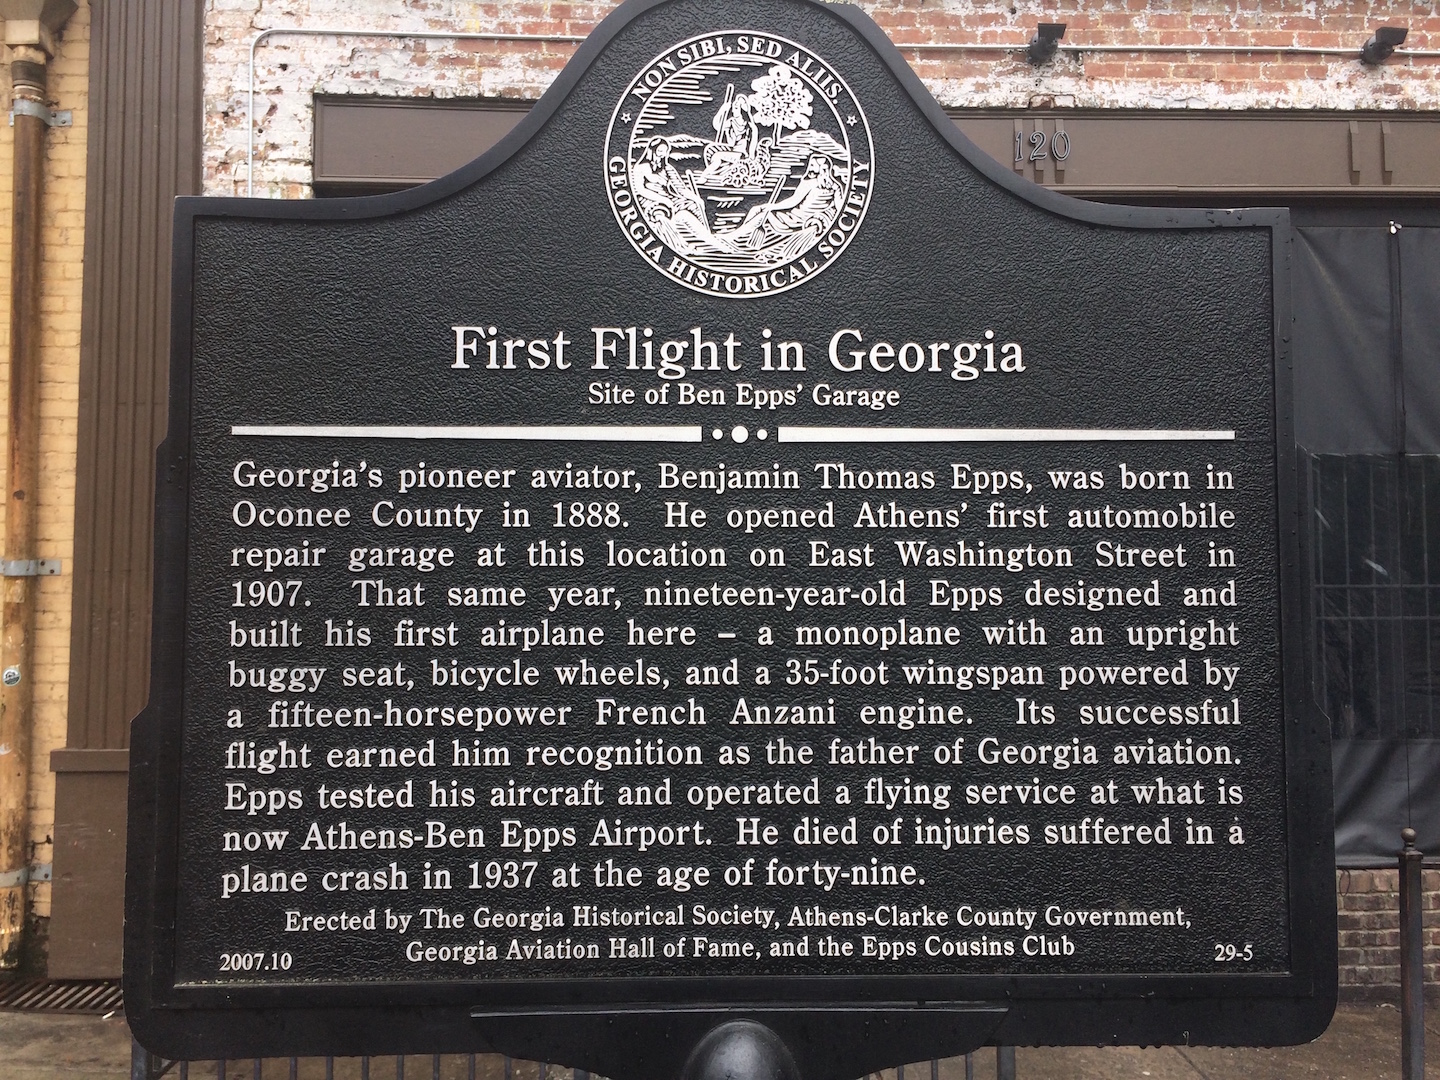 Georgia Historical Marker dedicated to his first flight